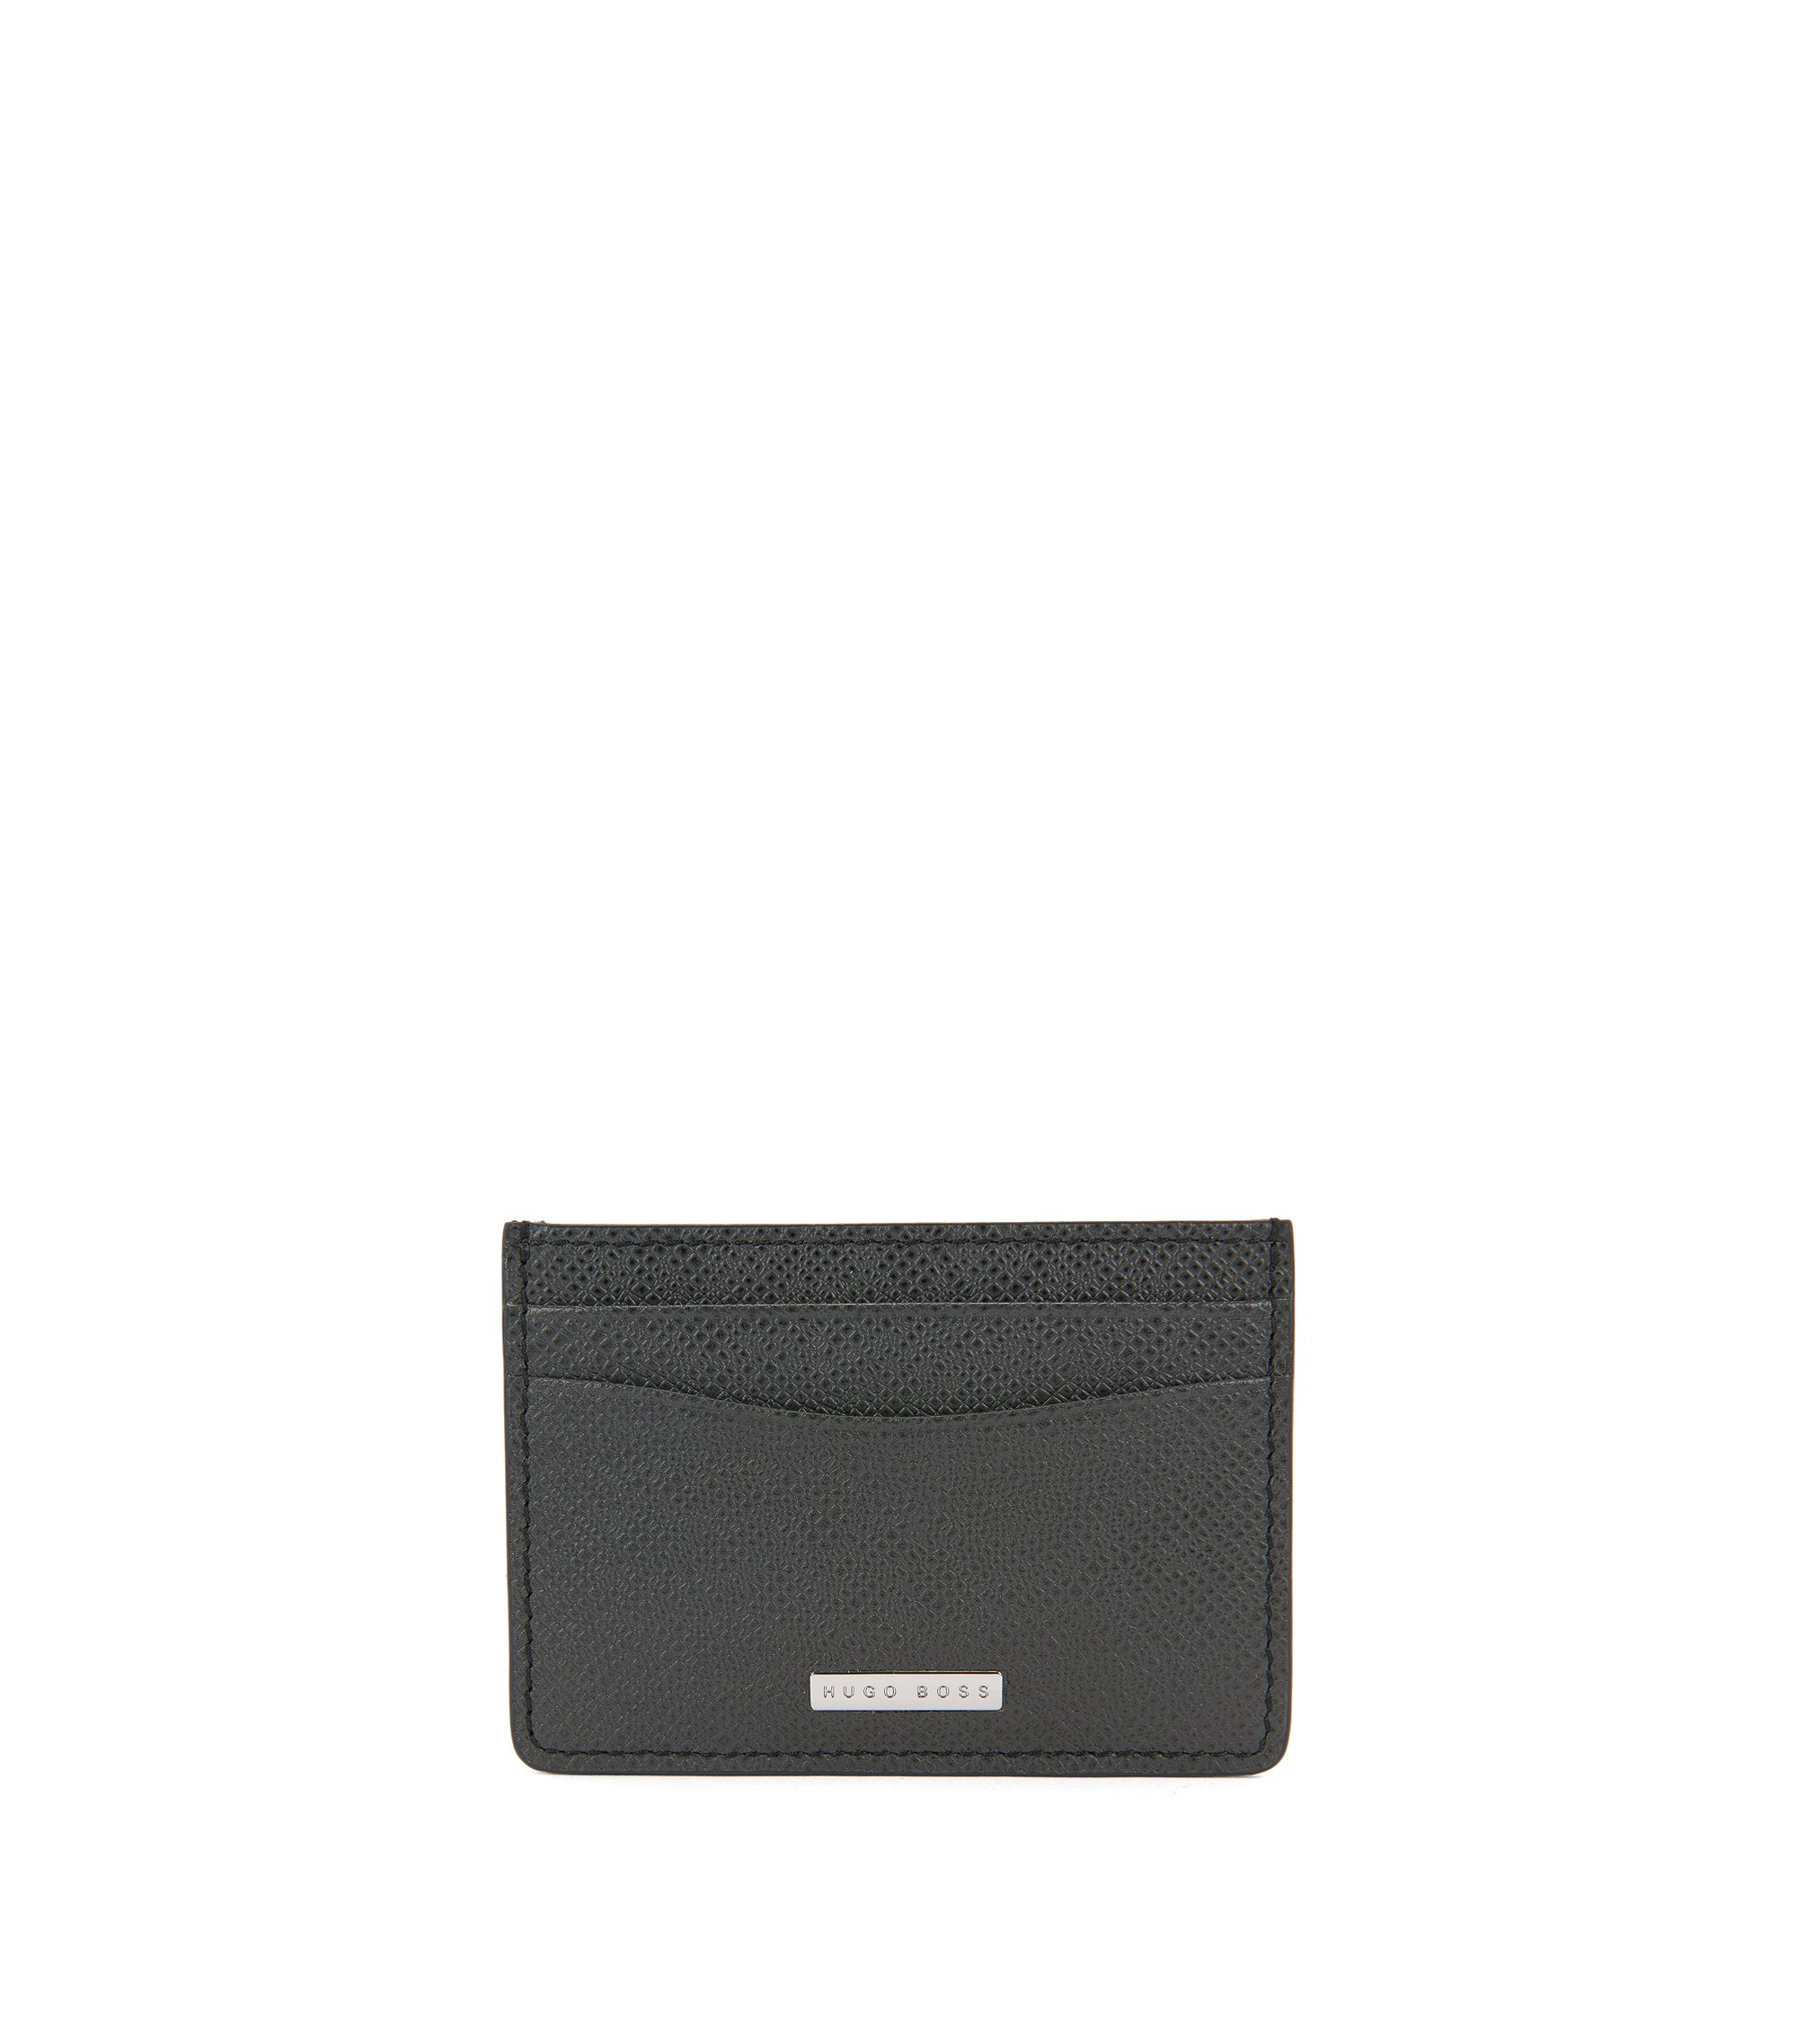 Signature Collection money clip in palmellato leather, Dark Grey